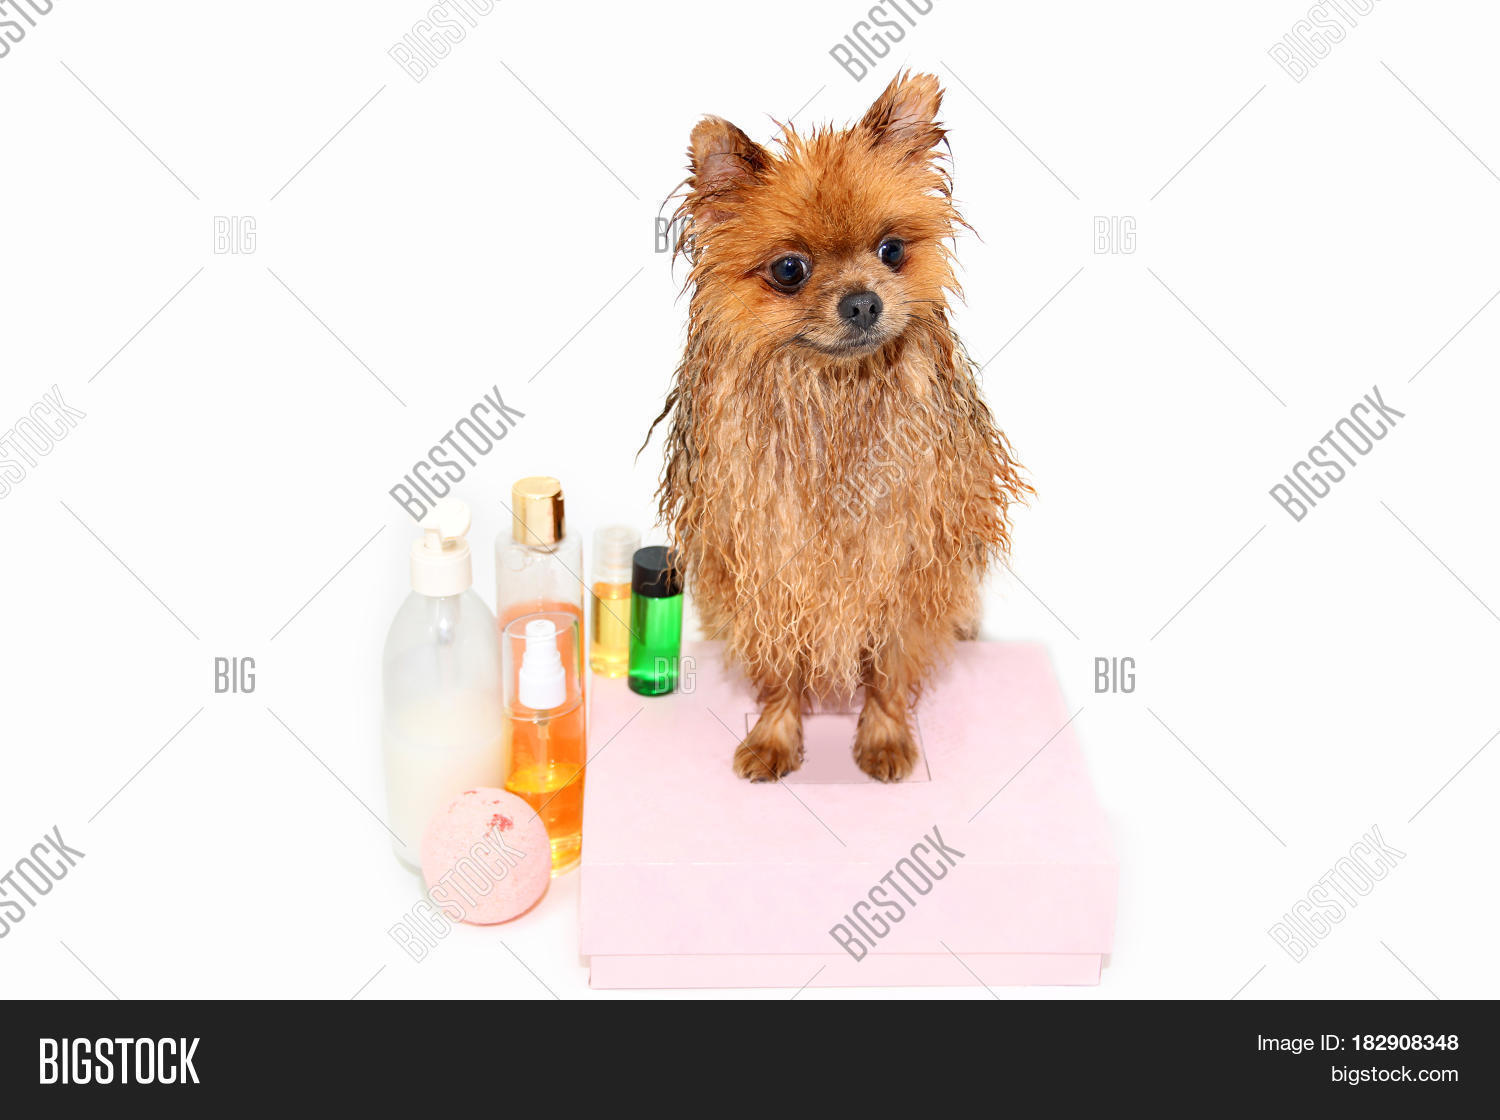 A Pomeranian Dog Taking A Shower With Soap And Water. Dog On White  Background.